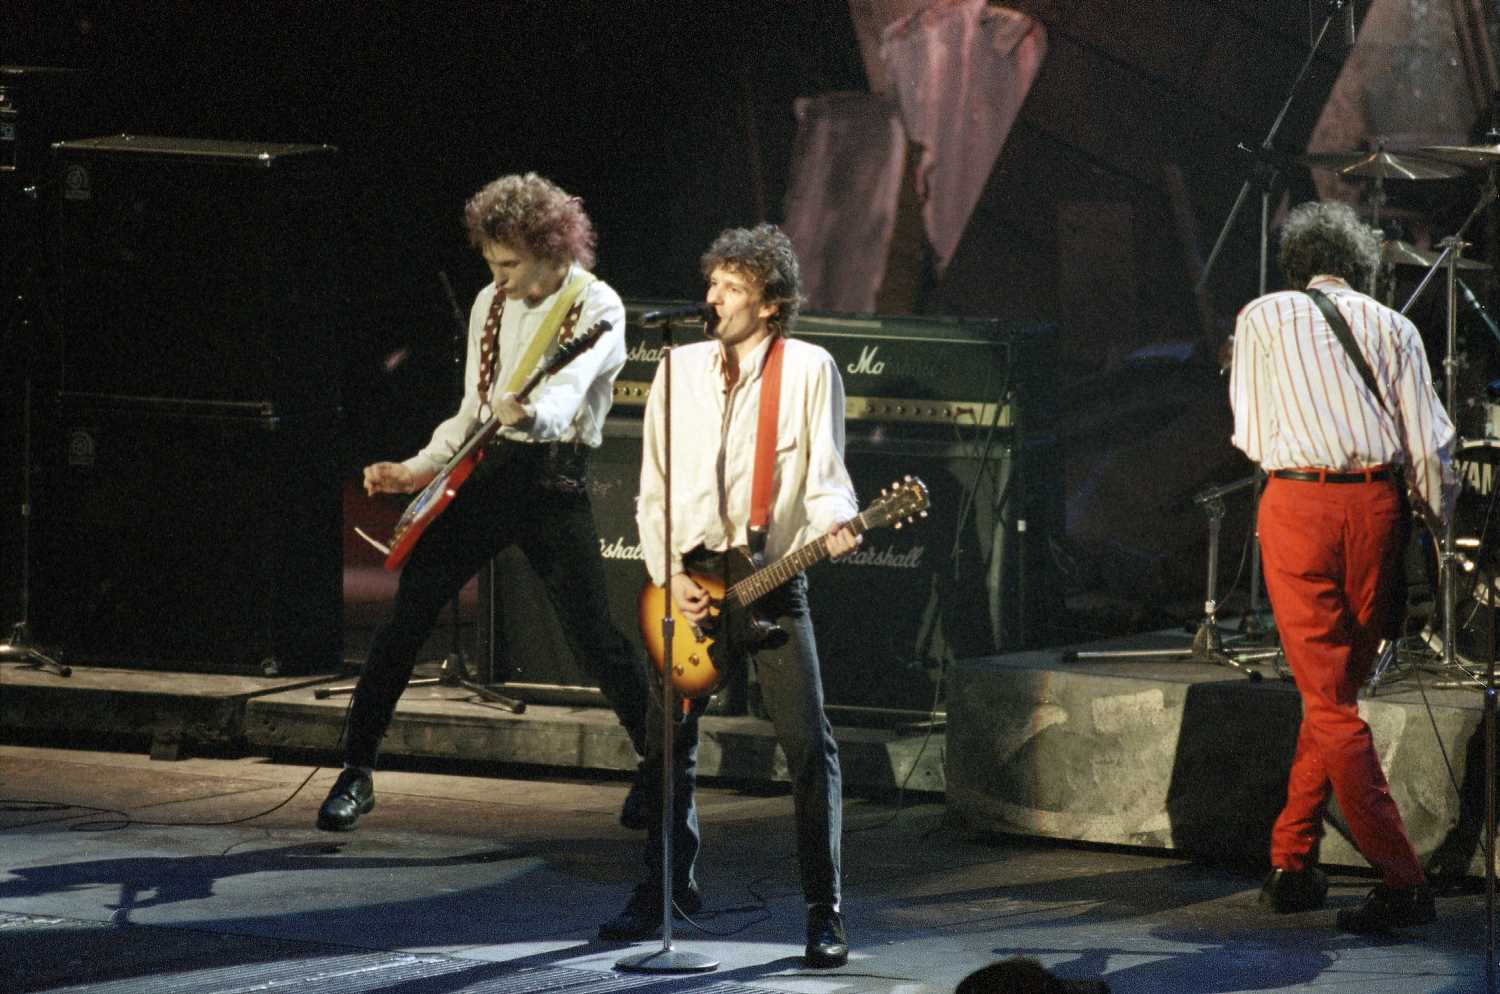 Hear the Replacements' Newly Mixed 'Talent Show' From 'Dead Man's Pop' Box Set